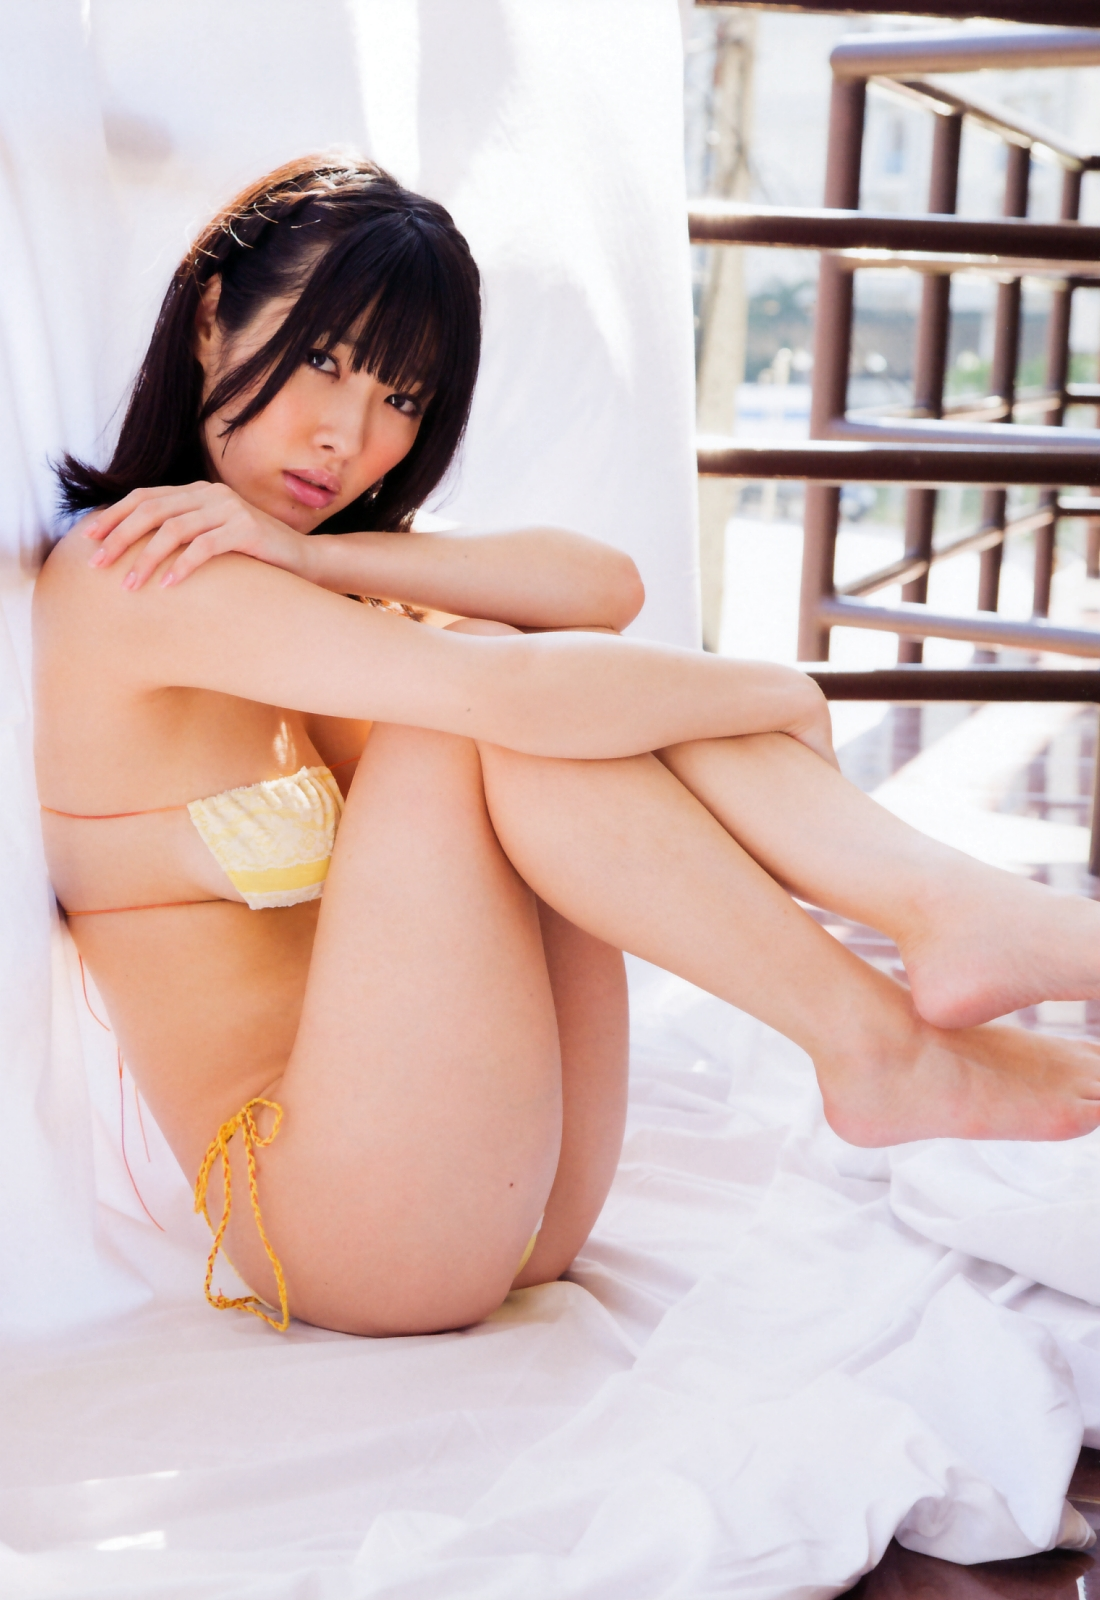 Its soft and makes you want to touch it Anna Konno 054